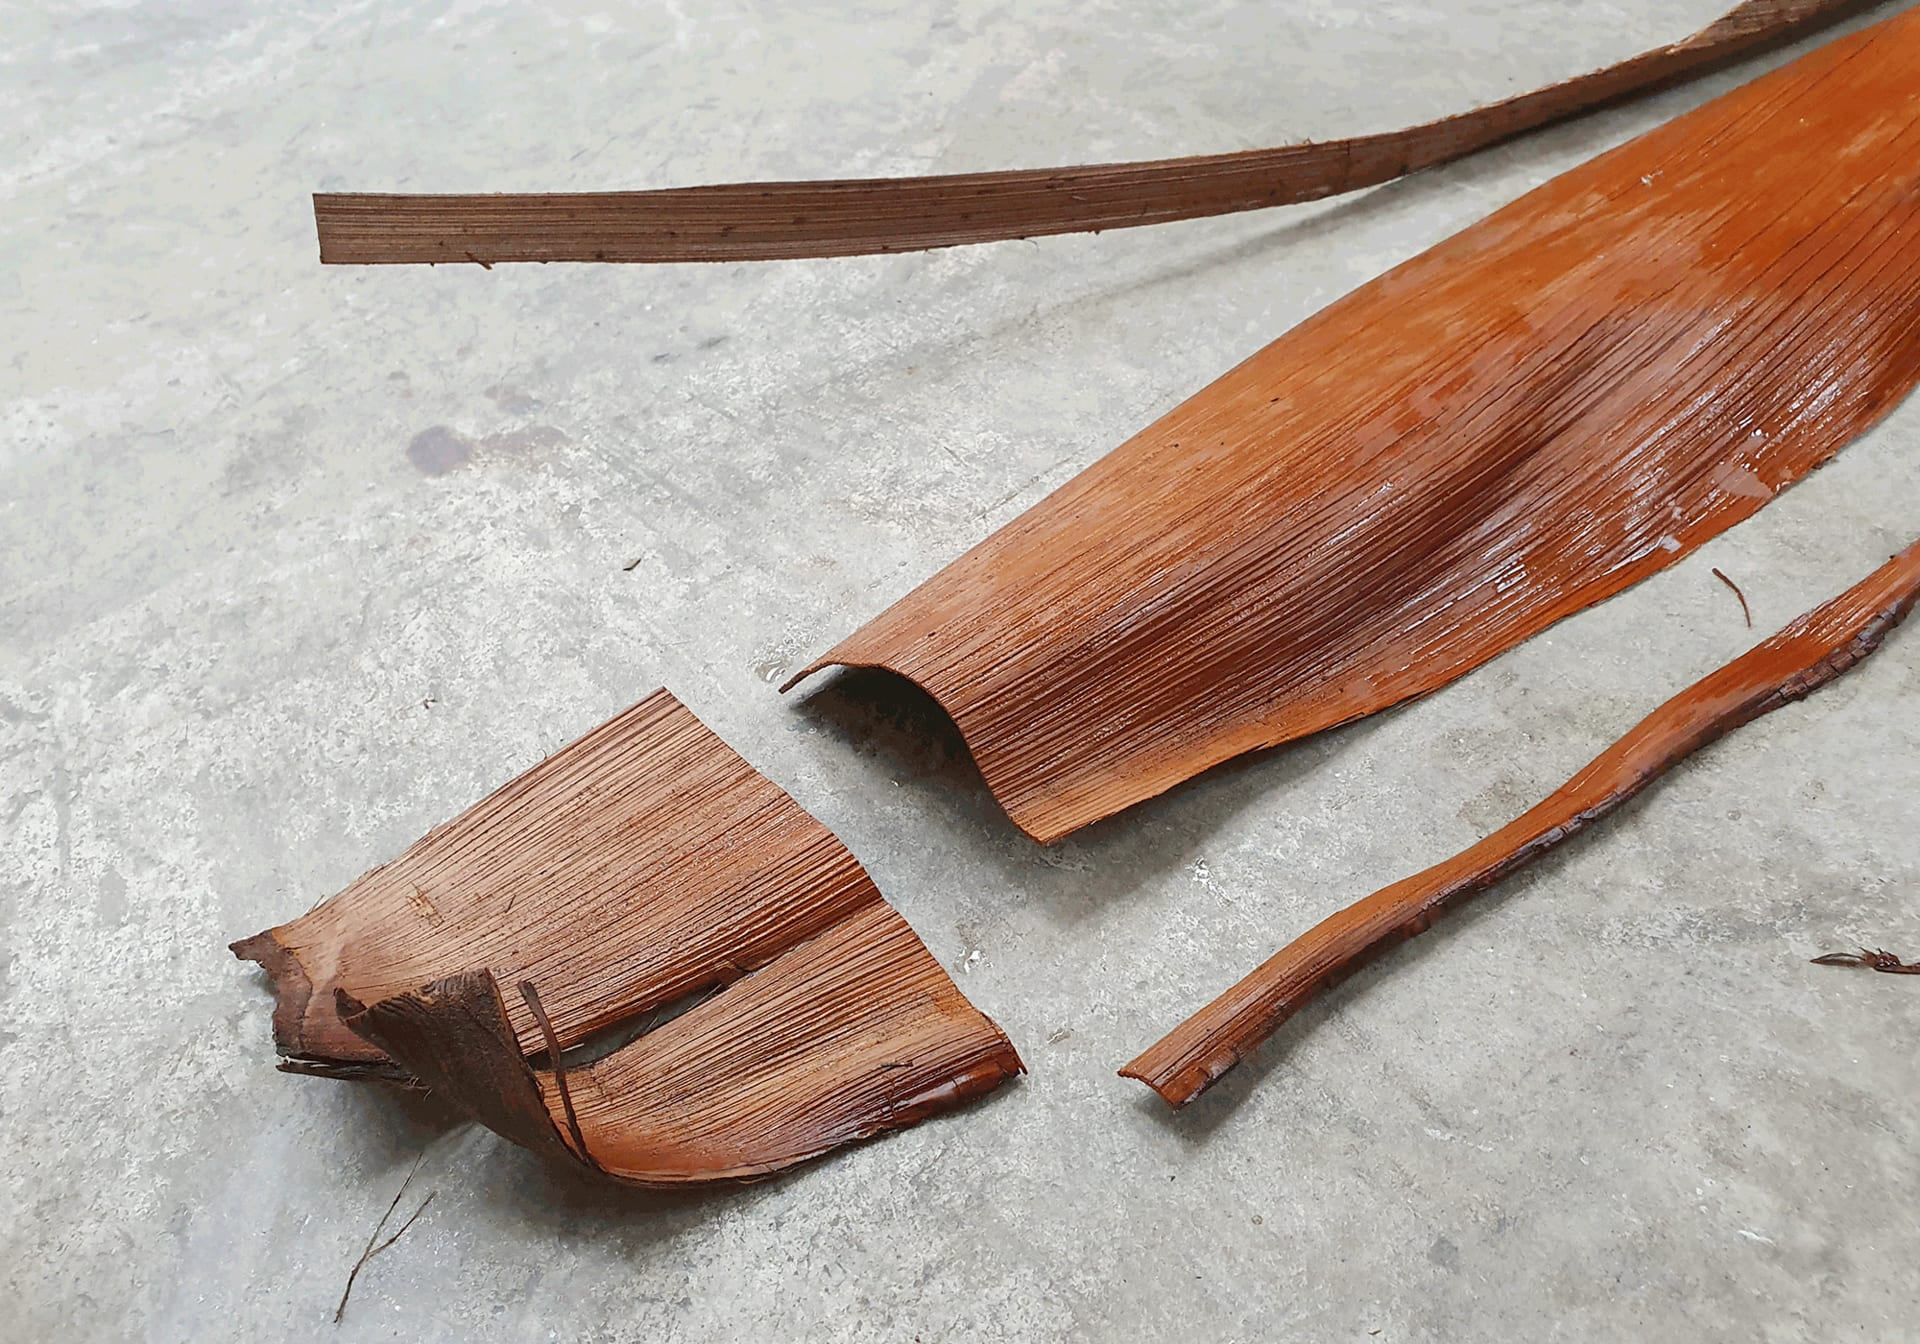 Fillet palm leaf sheath